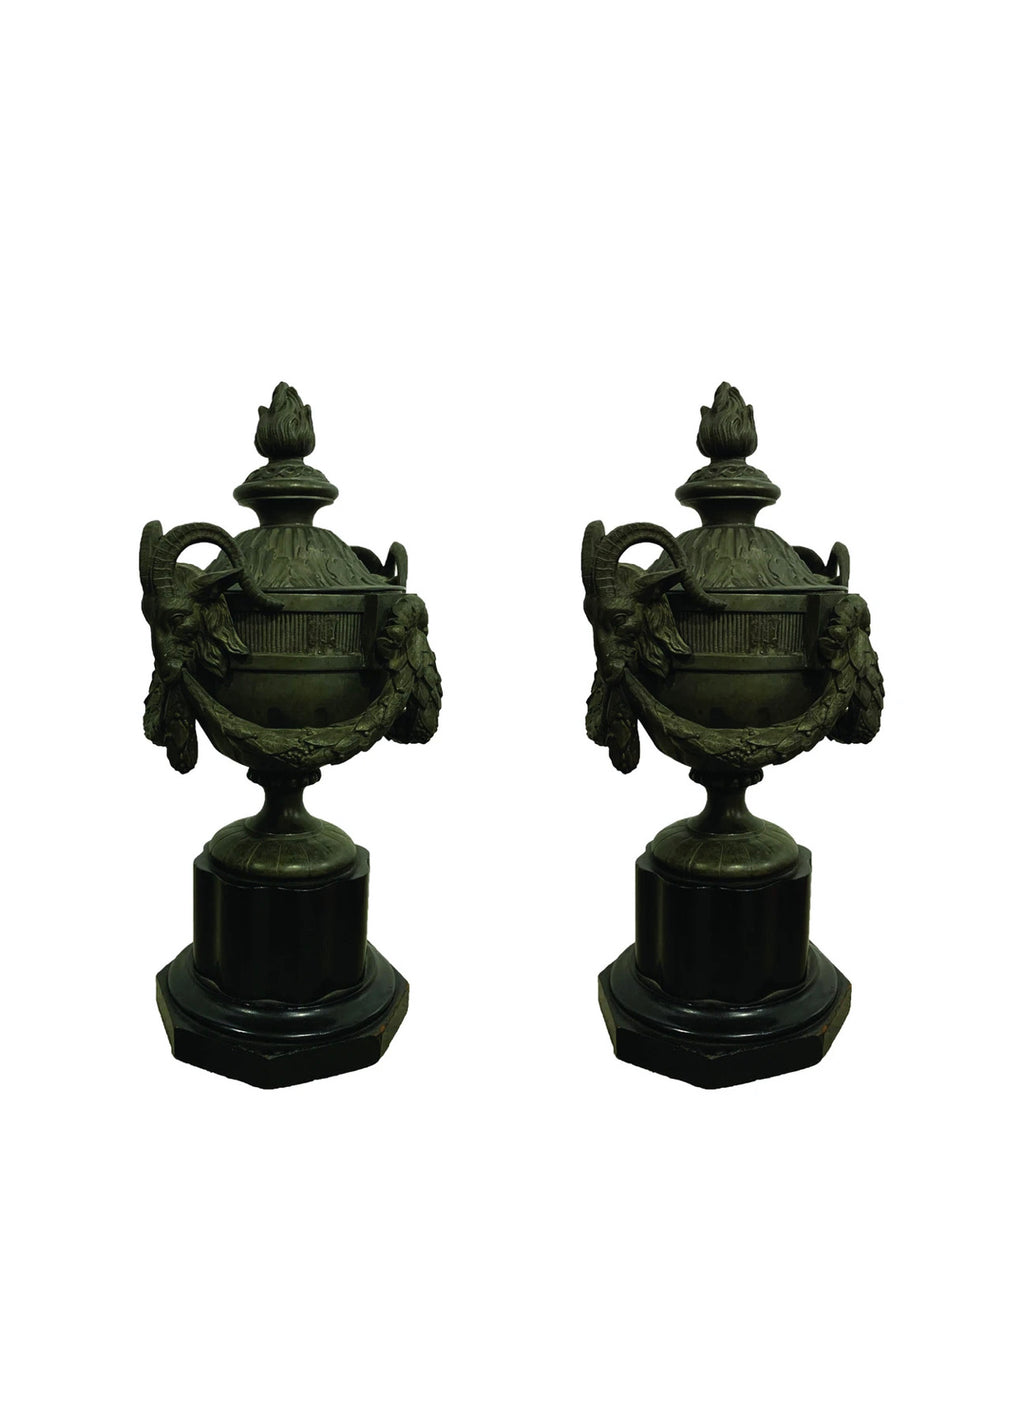 PAIR OF 19TH CENTURY FRENCH LE GRAND TOUR BRONZE URNS ON PAINTED WOOD BASES - Accessories - Libertine